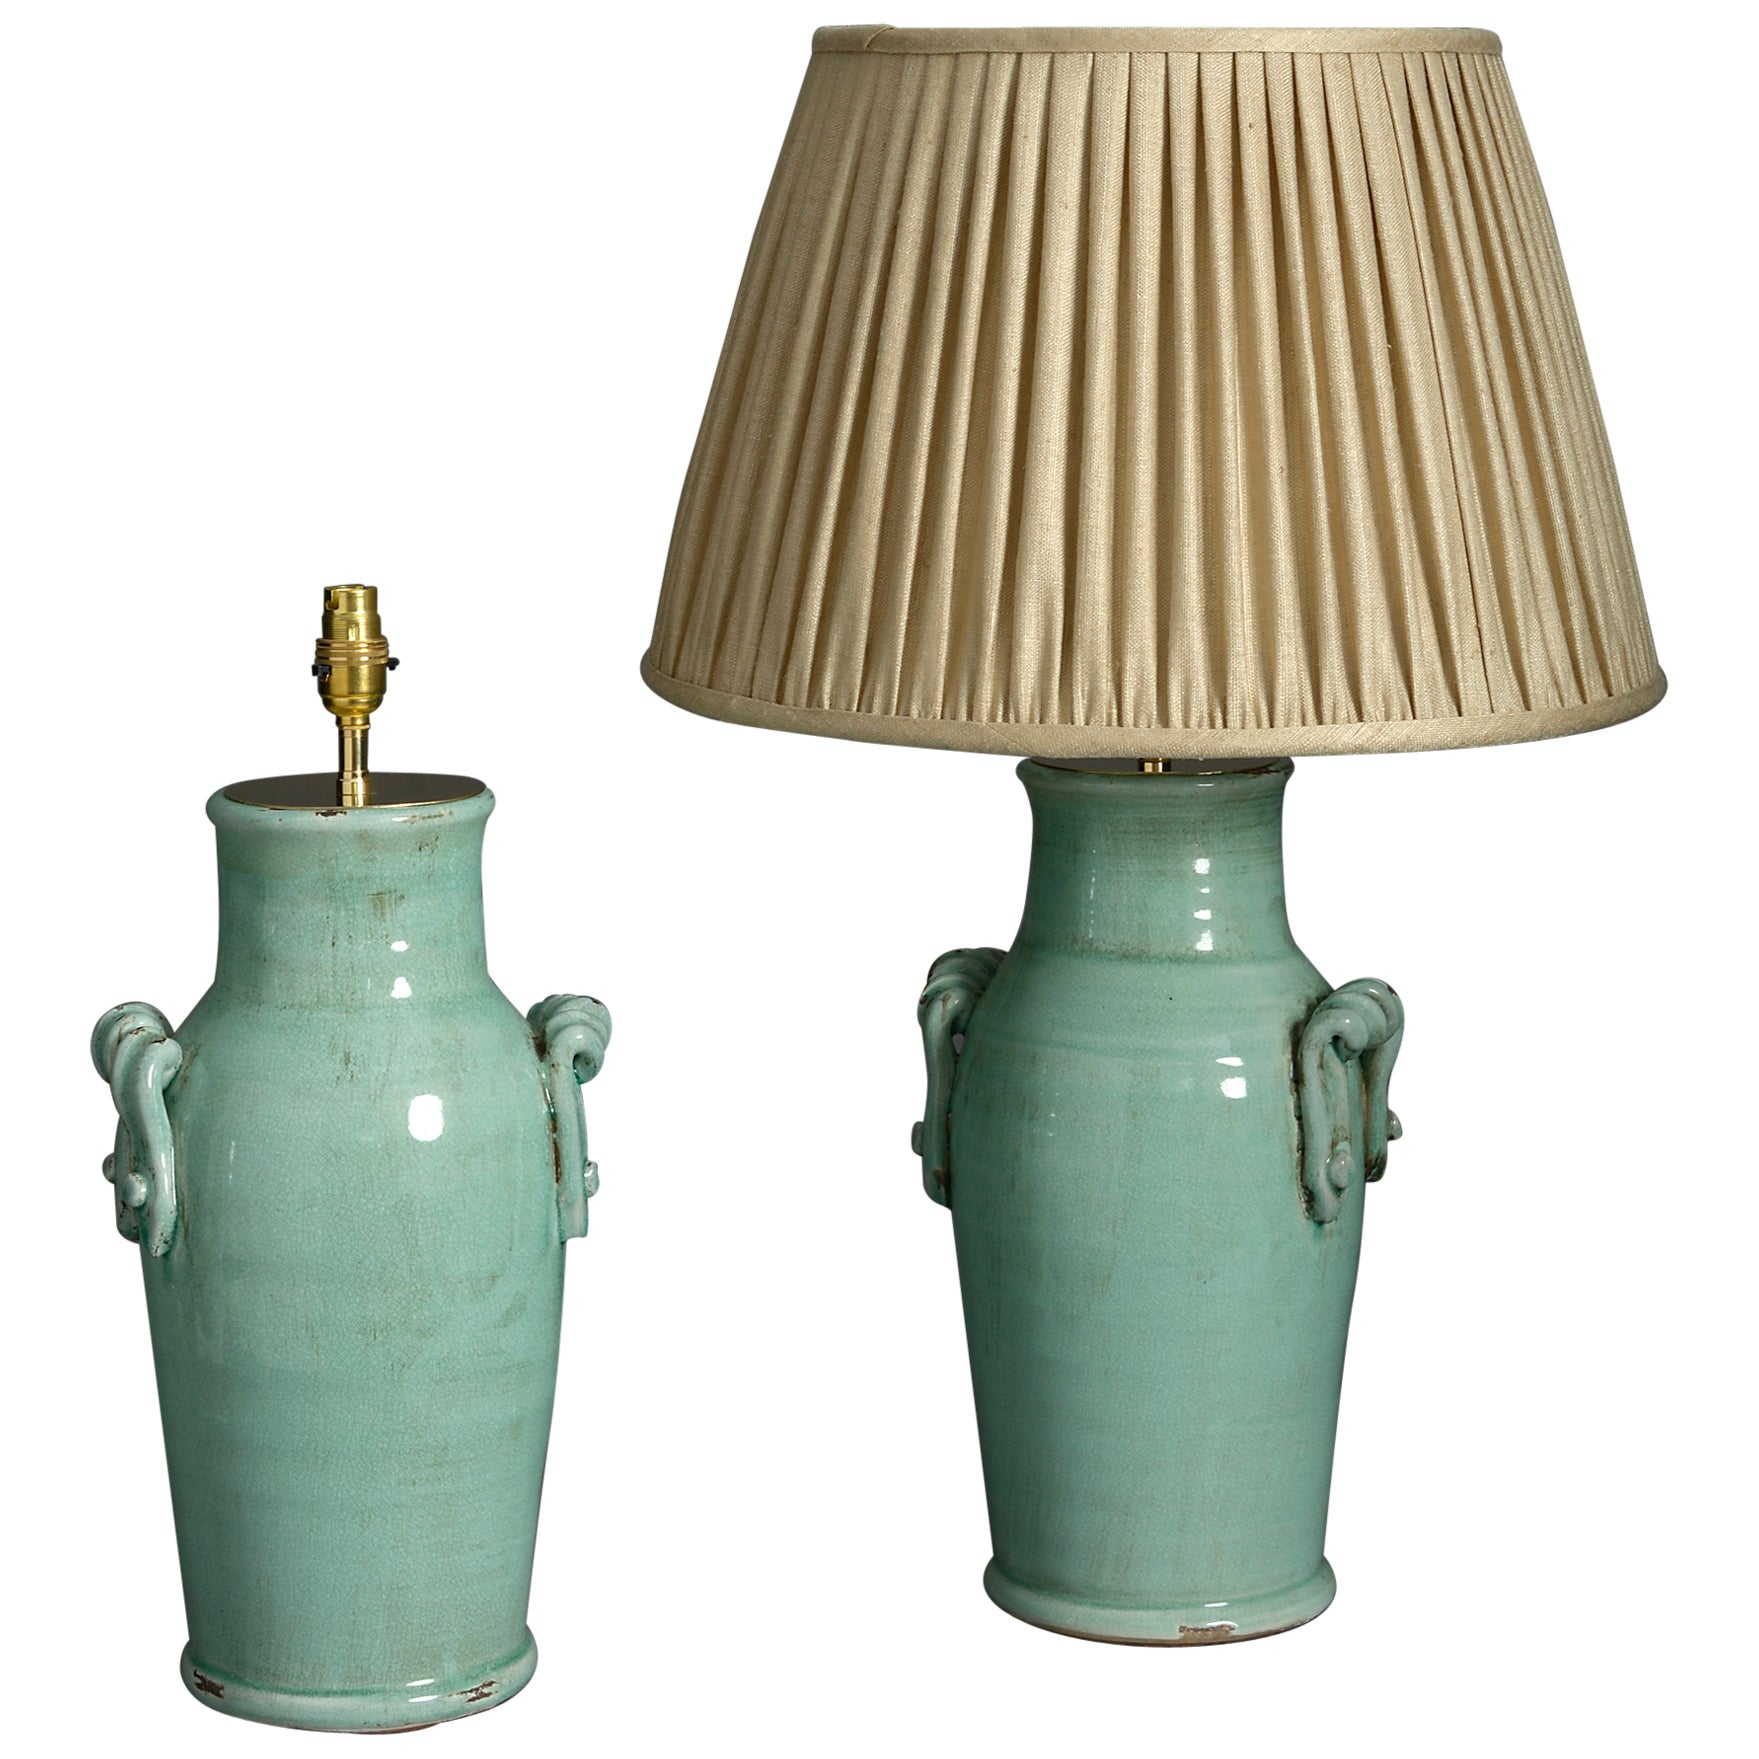 Pair of Celadon Green Crackle Glaze Vase Lamps